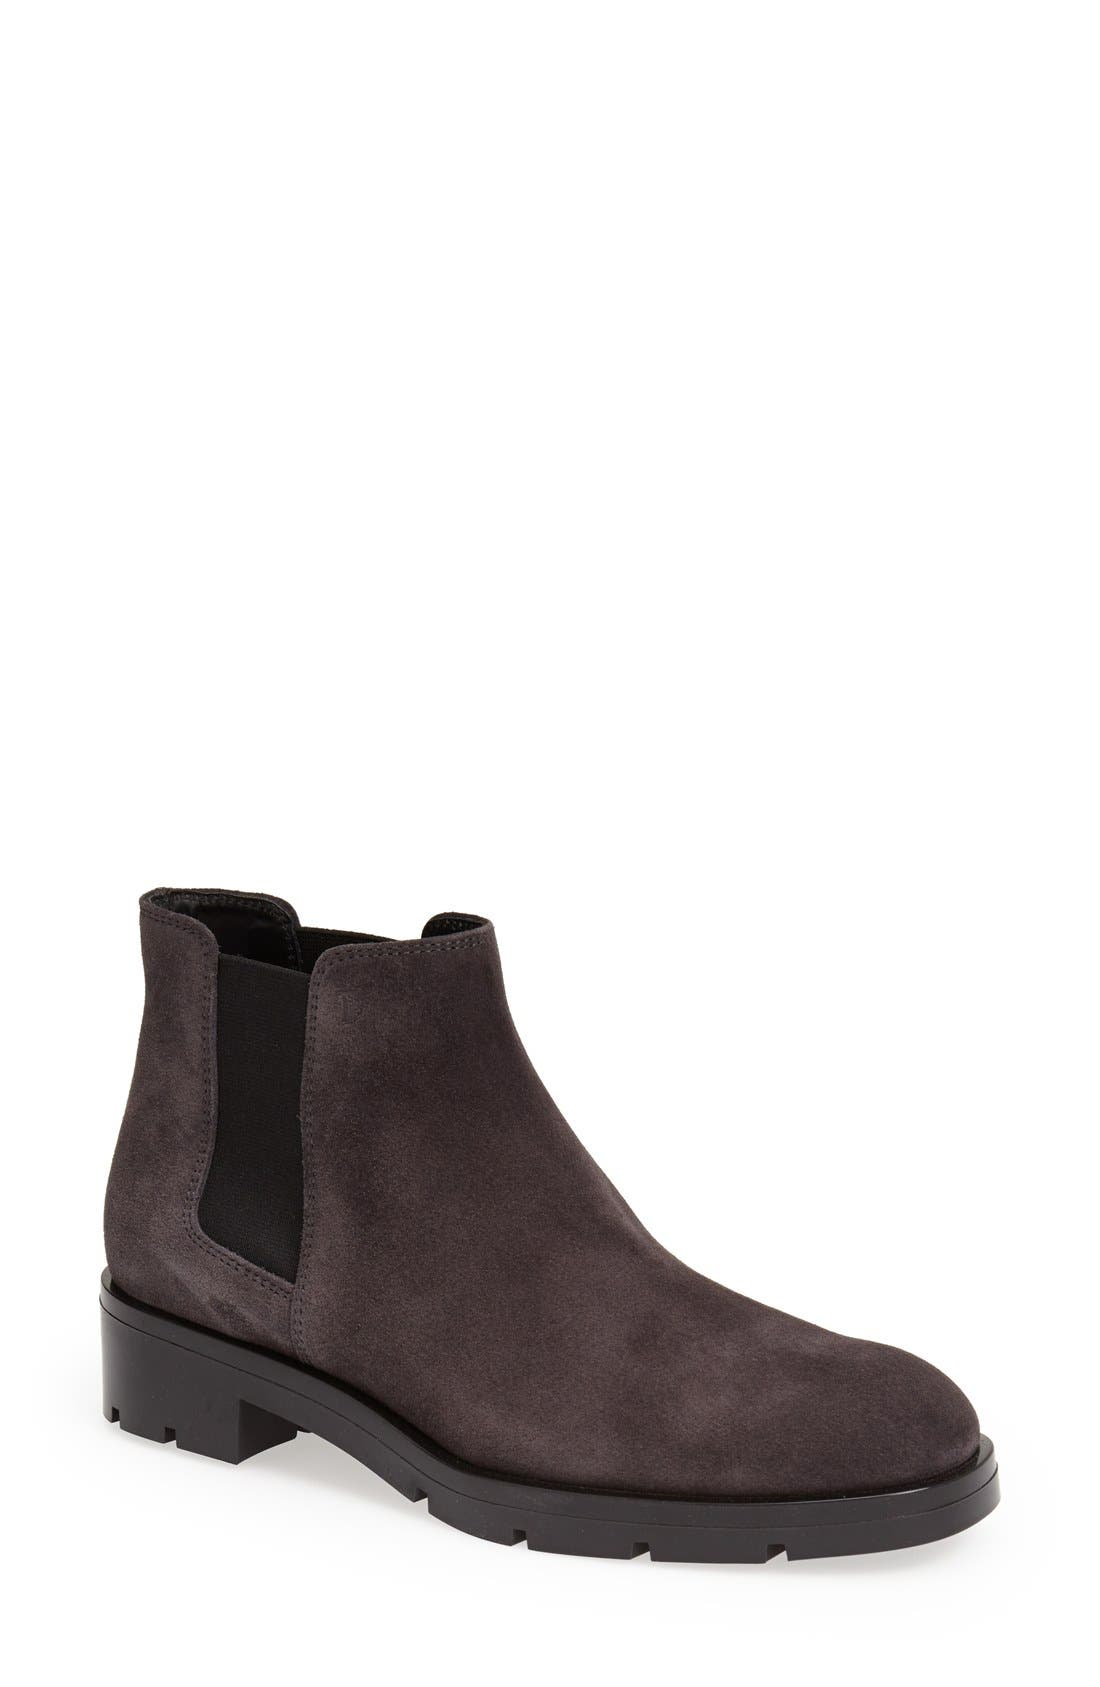 Alternate Image 1 Selected - Tod's Suede Chelsea Boot (Women)